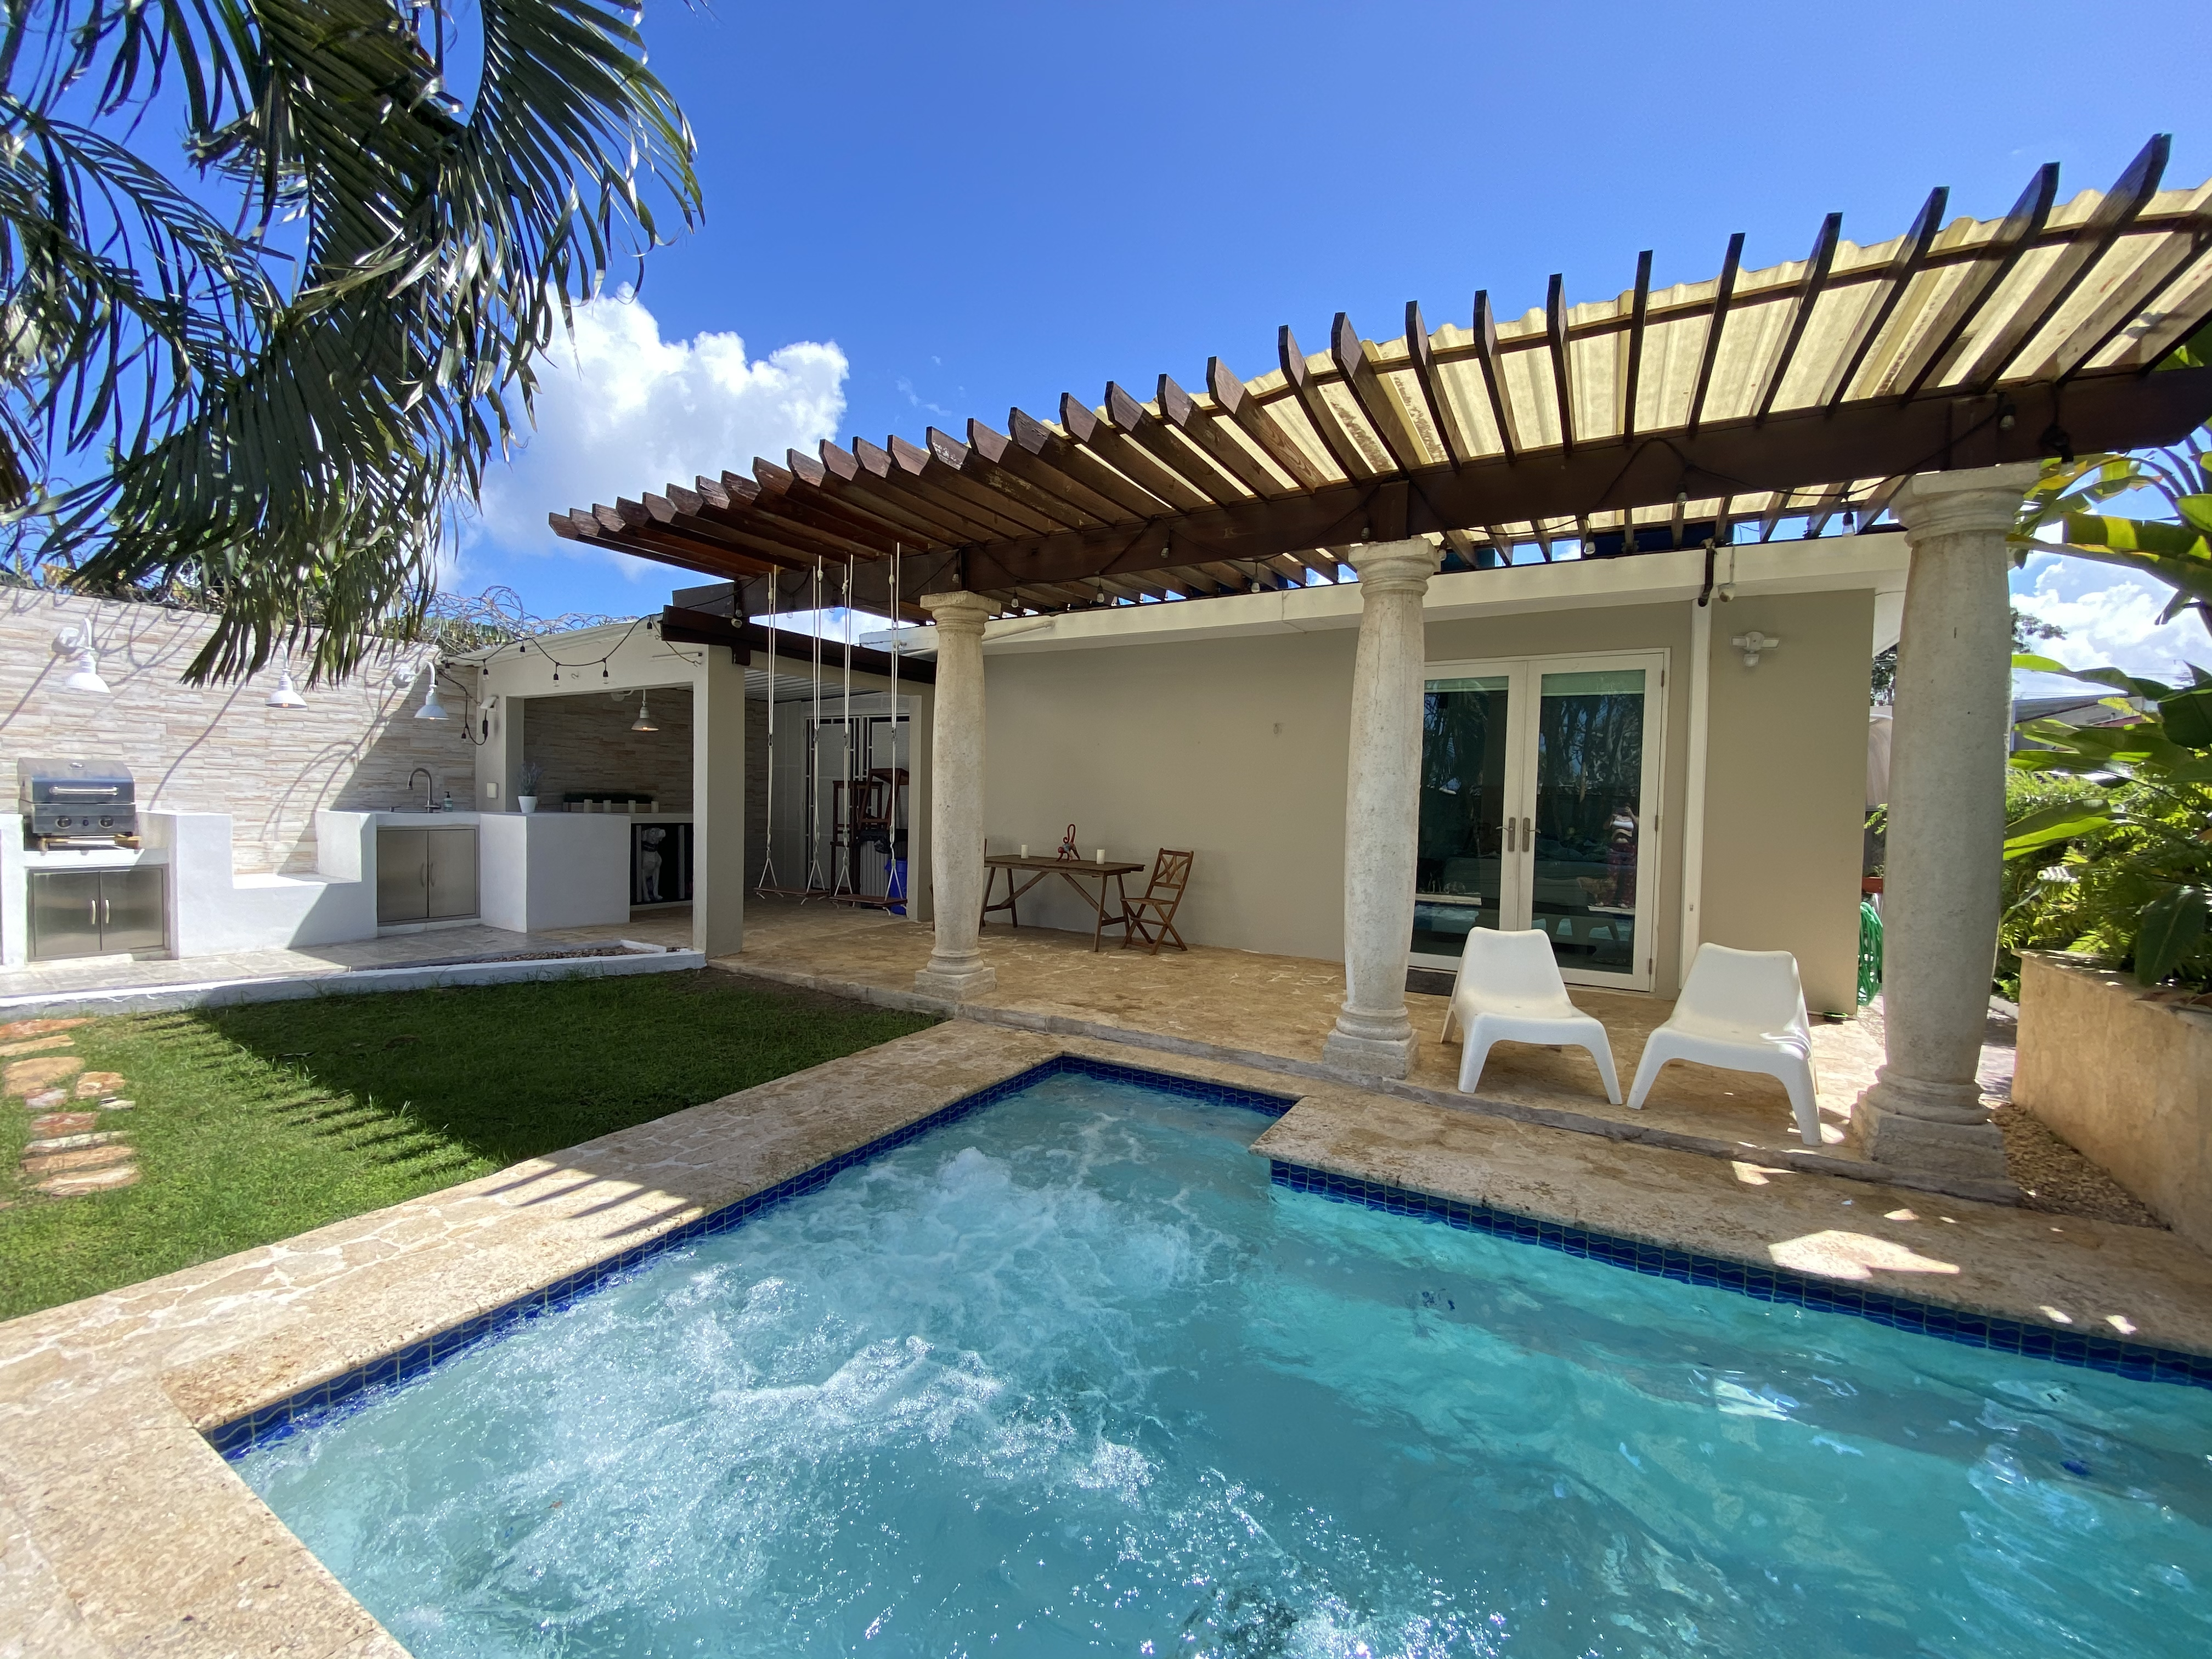 ponce house rentals for group vacation